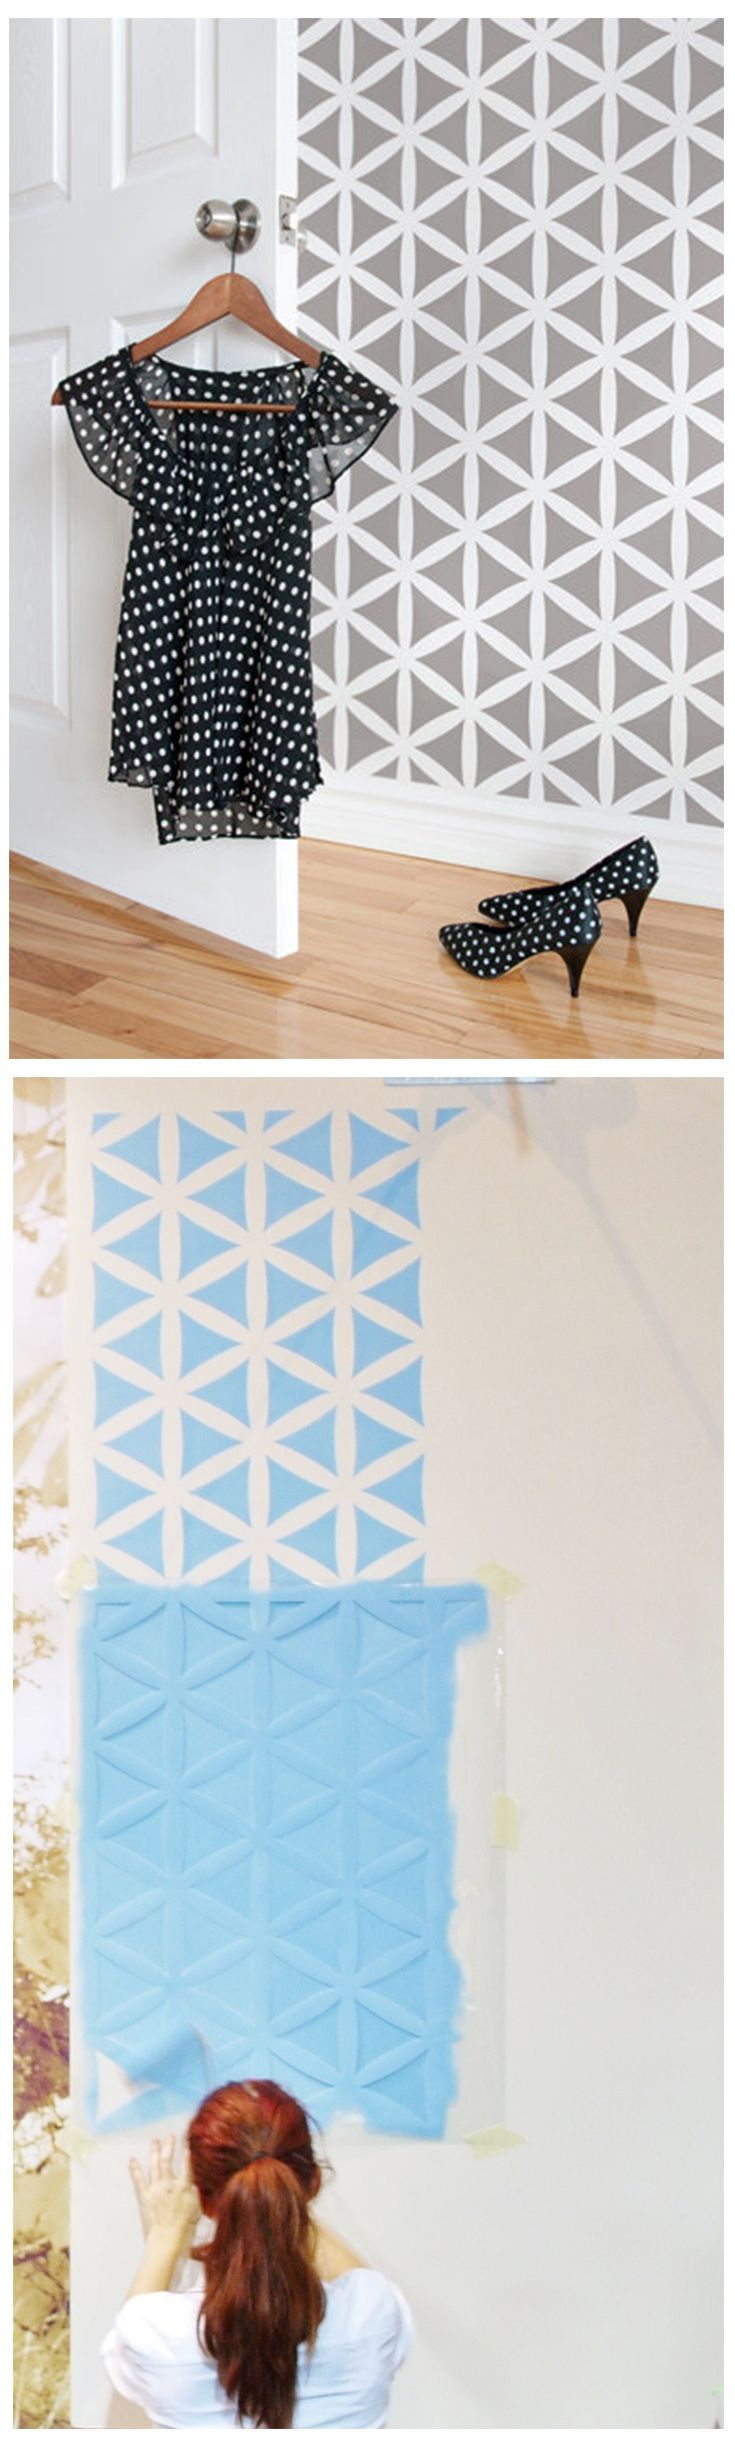 The 25 best geometric stencil ideas on pinterest stencil flower of life geometric pattern large wall stencil for diy project amipublicfo Images